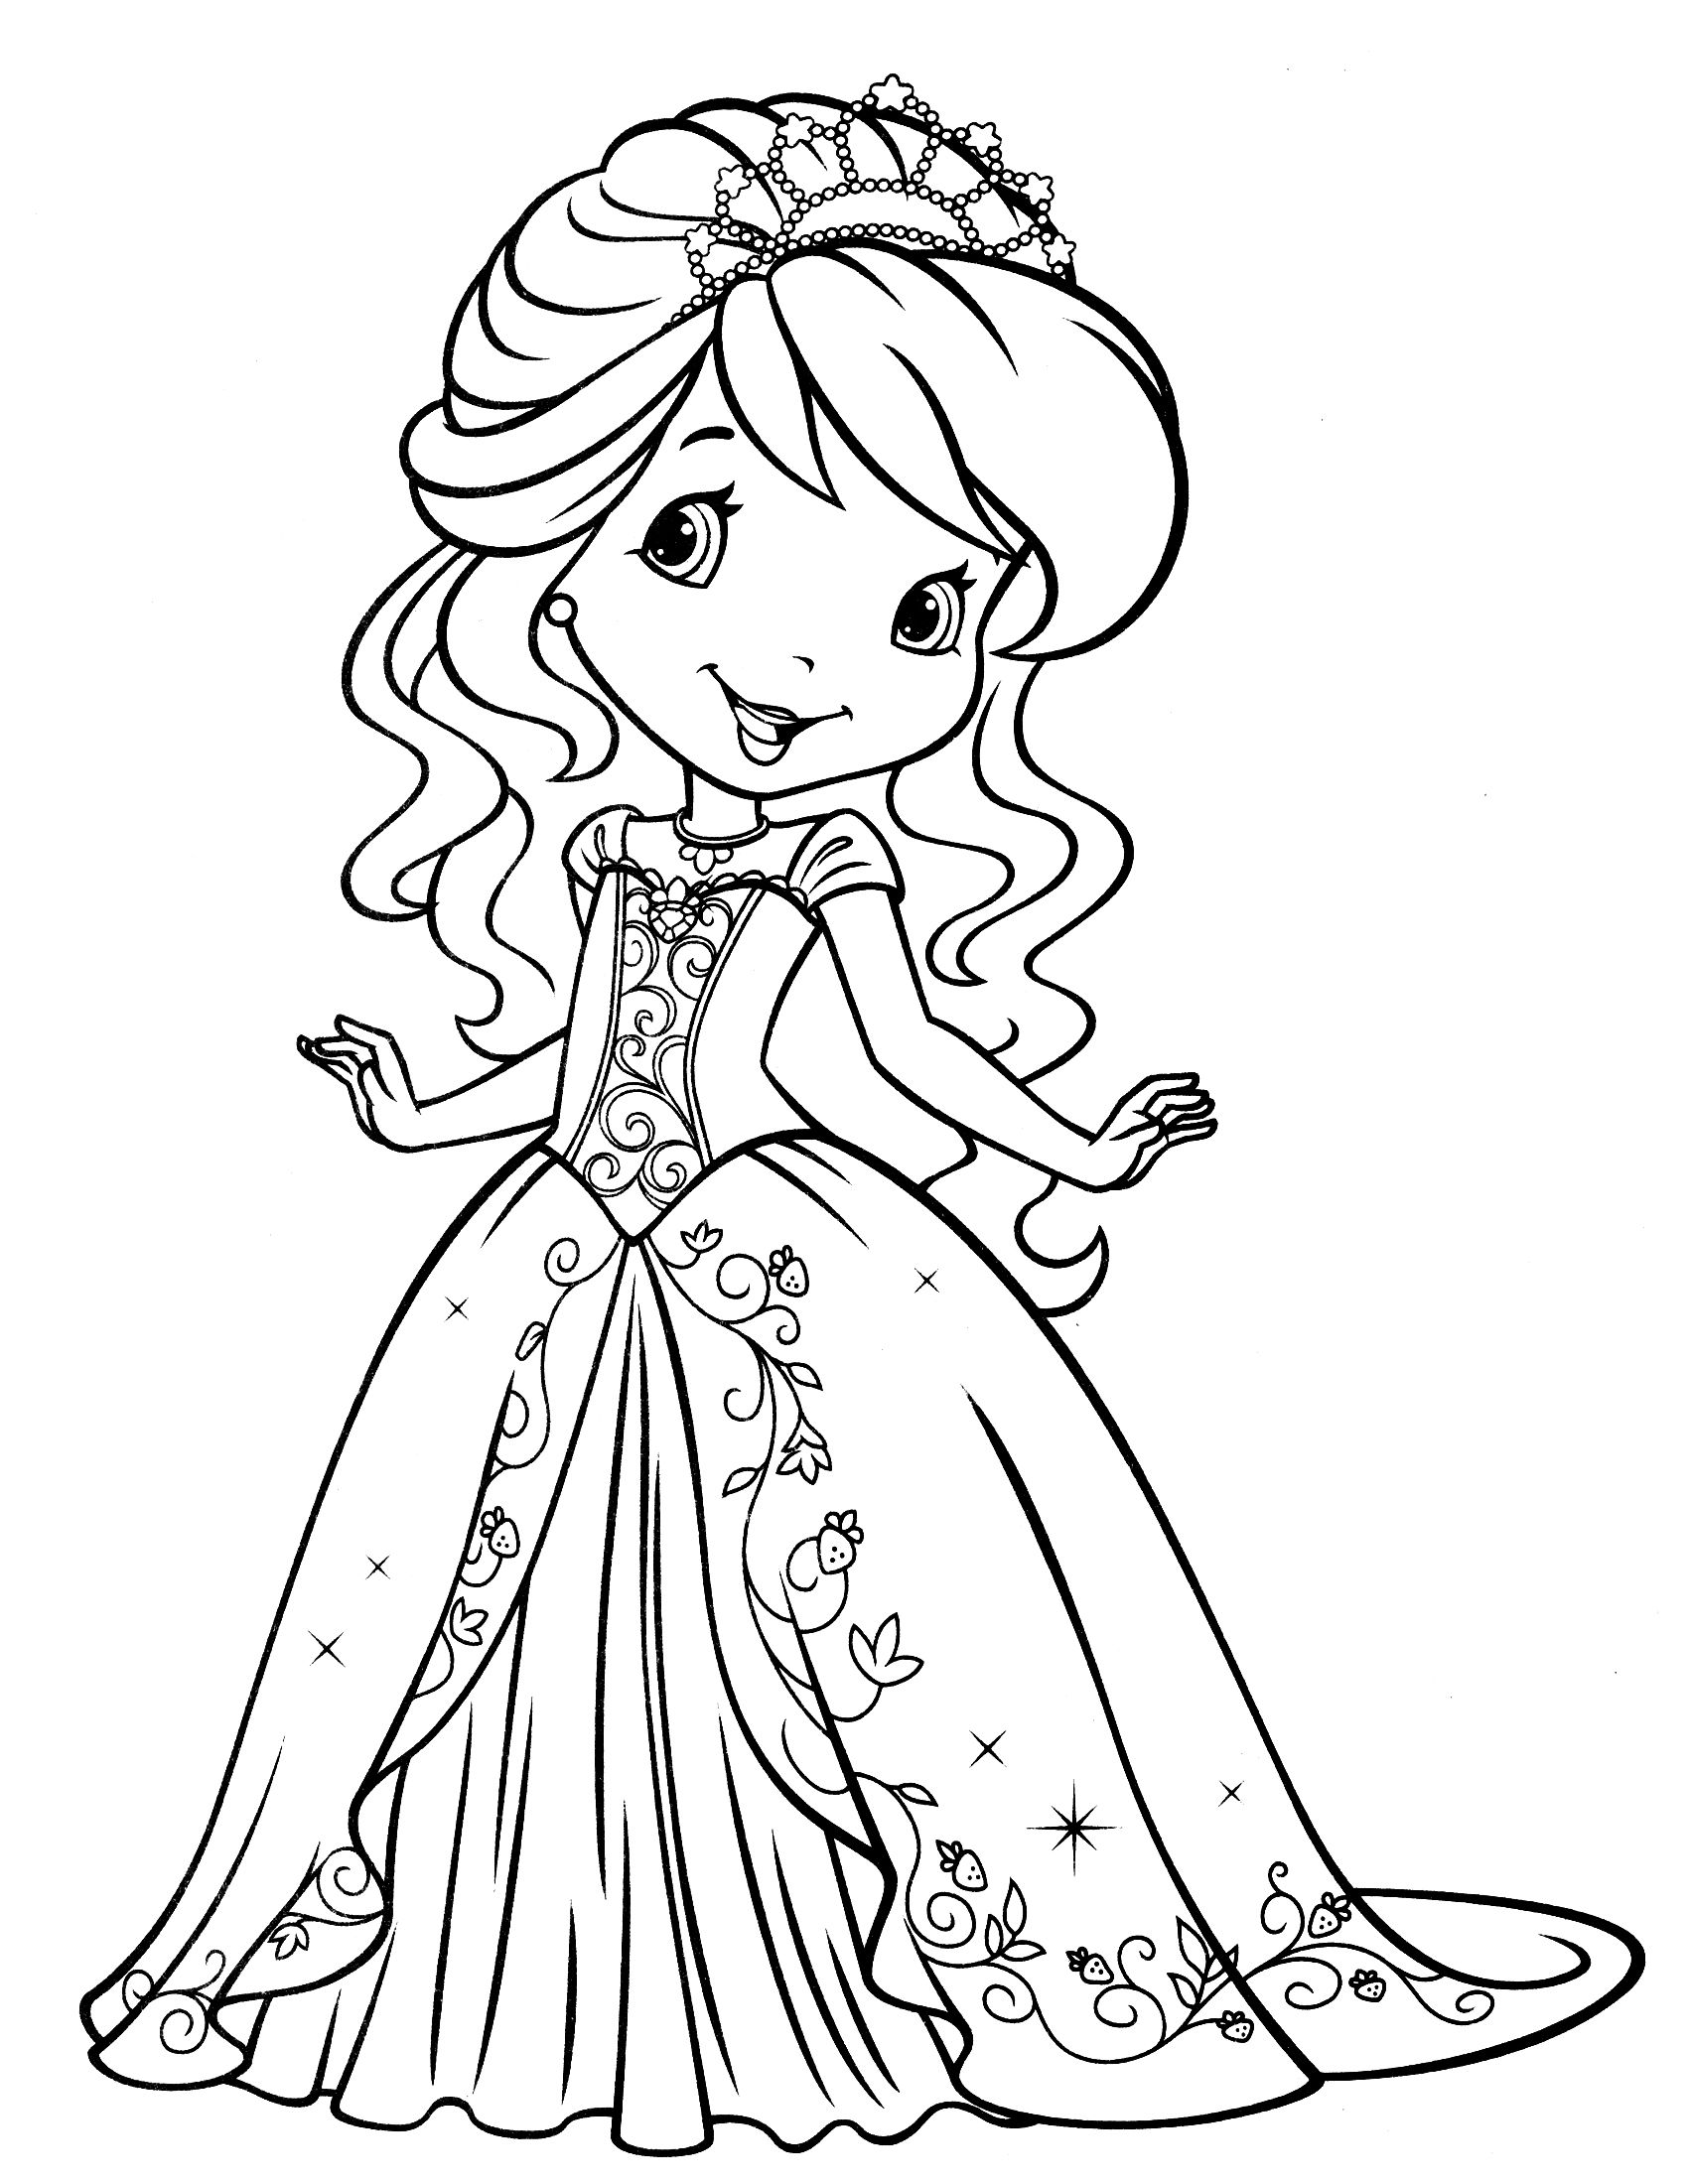 photo about Strawberry Shortcake Printable Coloring Pages named strawberry shortcake printables Strawberry Shortcake